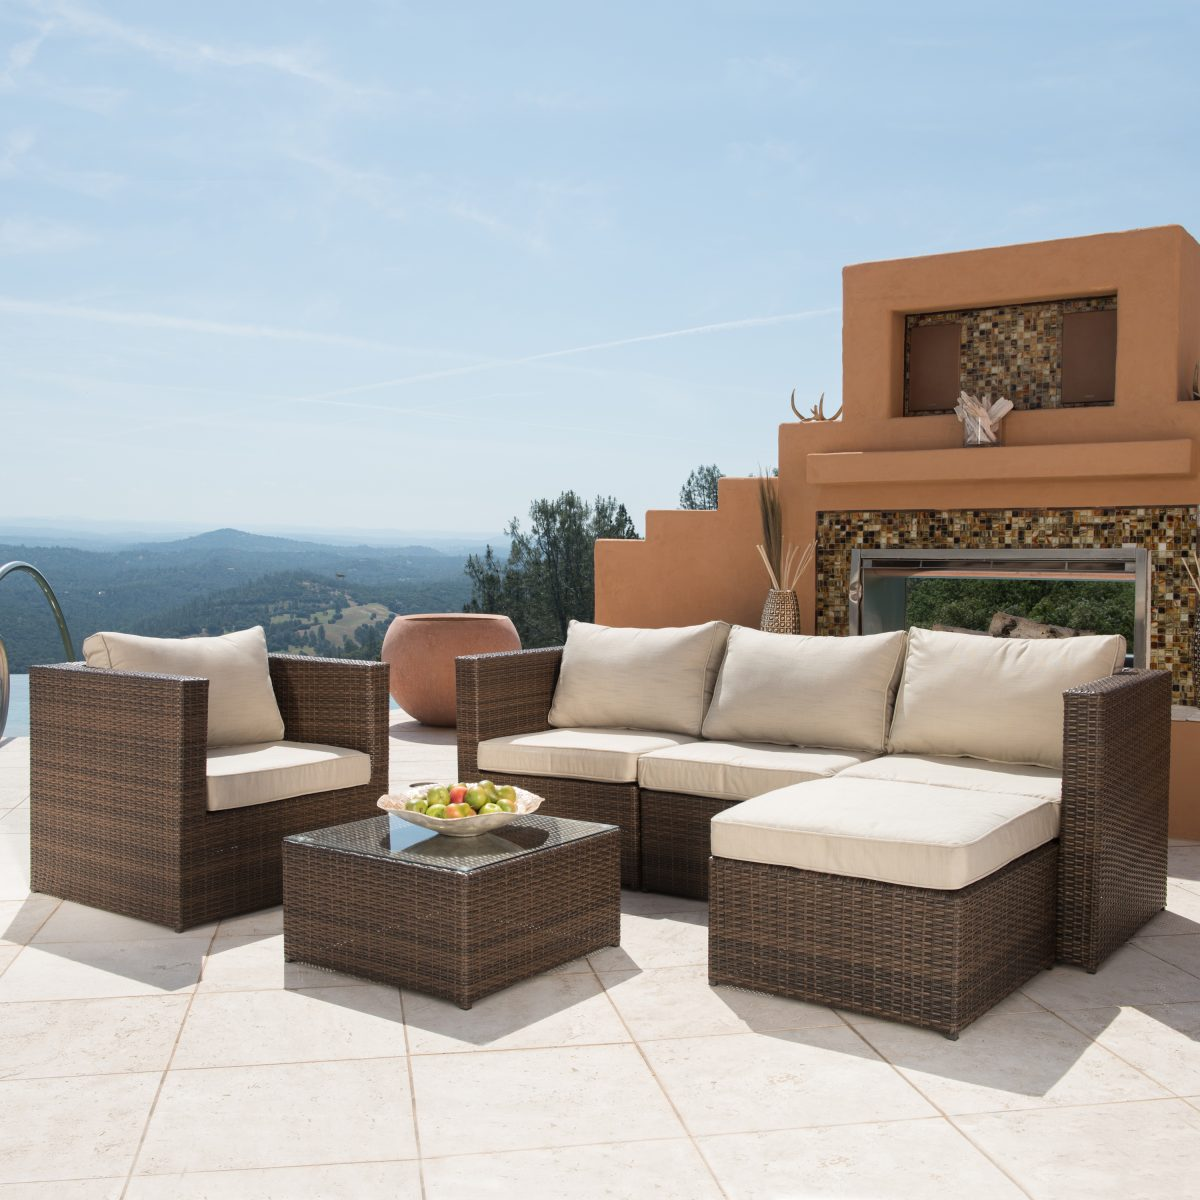 Borealis Trey 6 Piece Brown And Beige Resin Wicker Outdoor Furniture Set With Gl Top